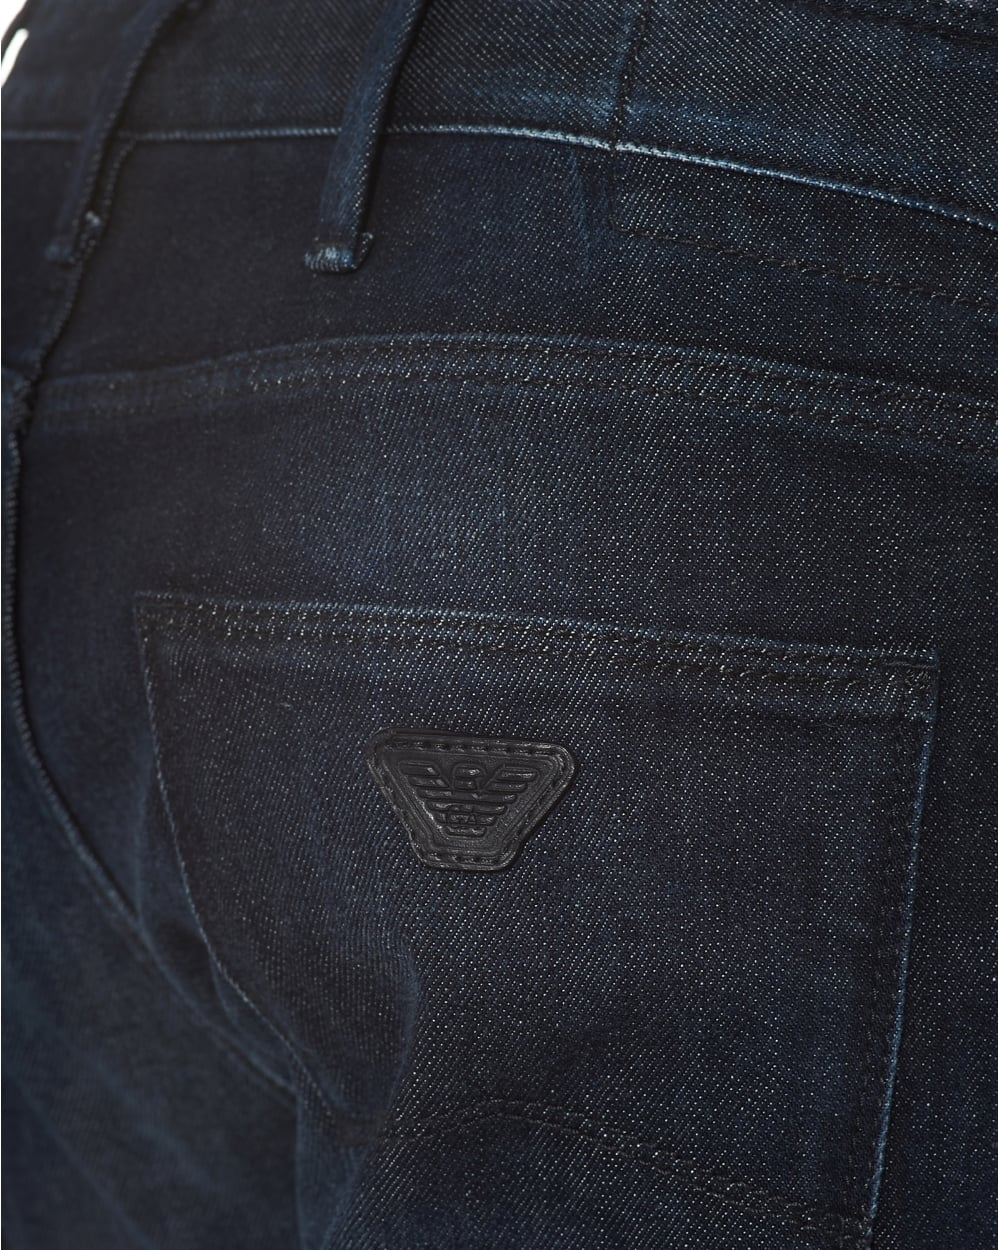 3f3e76ac Mens J06 Jeans, Dark Whiskered Thighs Navy Slim Fit Denim